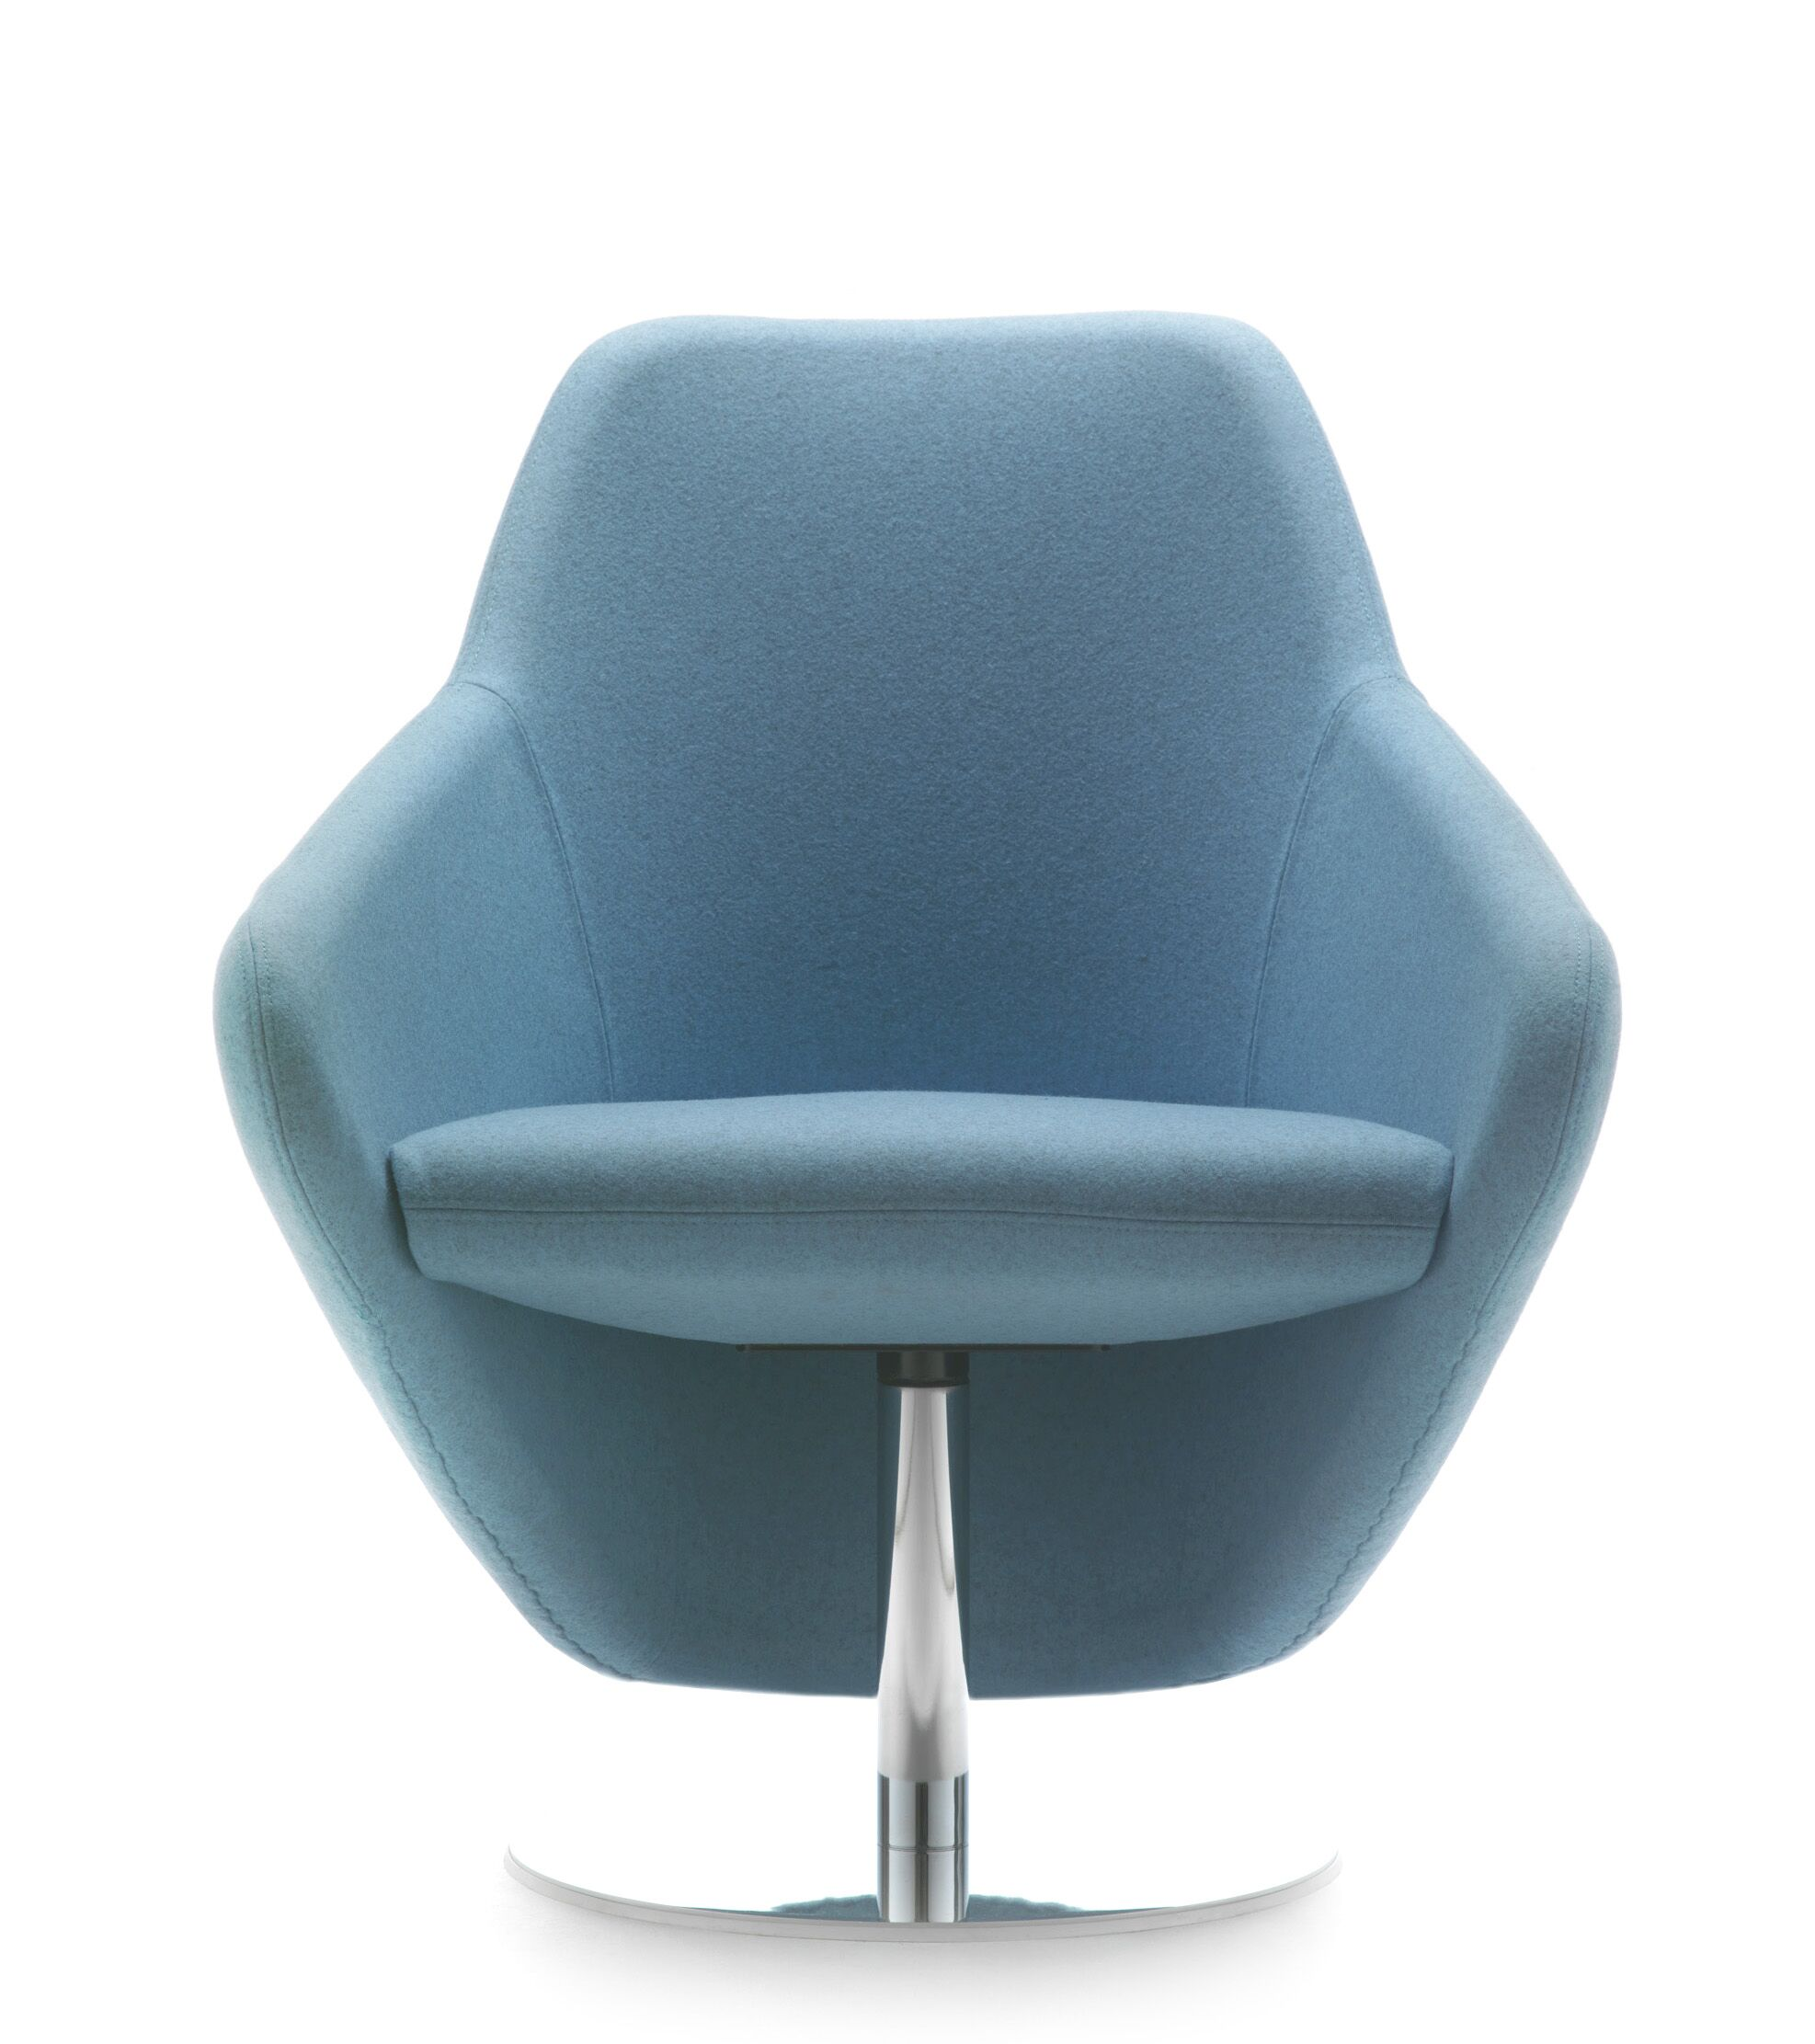 Taxido Swivel Lounge Chair Finish: White, Upholstery: Momentum Fuse Fabric Pimento